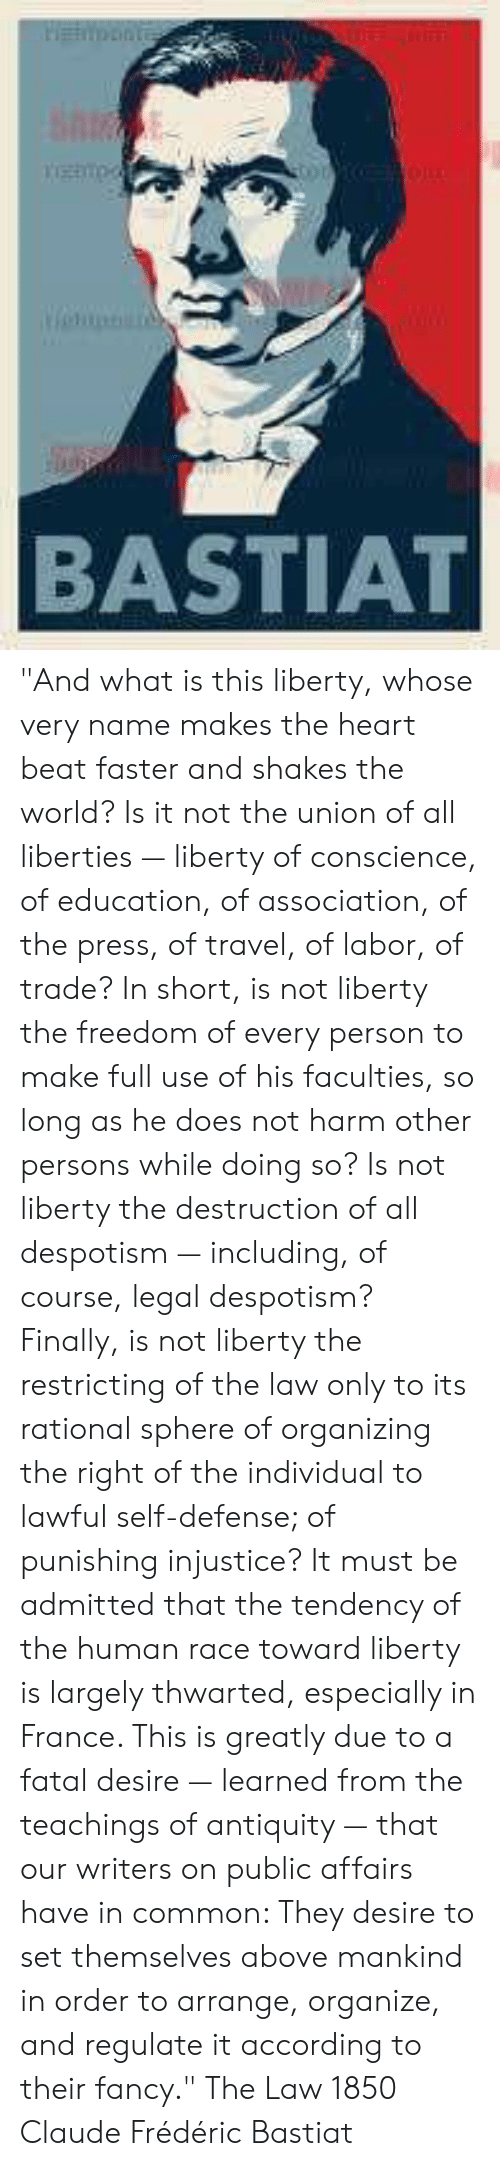 """despotism: BASTIAT """"And what is this liberty, whose very name makes the heart beat faster and shakes the world? Is it not the union of all liberties — liberty of conscience, of education, of association, of the press, of travel, of labor, of trade? In short, is not liberty the freedom of every person to make full use of his faculties, so long as he does not harm other persons while doing so? Is not liberty the destruction of all despotism — including, of course, legal despotism? Finally, is not liberty the restricting of the law only to its rational sphere of organizing the right of the individual to lawful self-defense; of punishing injustice?  It must be admitted that the tendency of the human race toward liberty is largely thwarted, especially in France. This is greatly due to a fatal desire — learned from the teachings of antiquity — that our writers on public affairs have in common: They desire to set themselves above mankind in order to arrange, organize, and regulate it according to their fancy.""""  The Law 1850 Claude Frédéric Bastiat"""